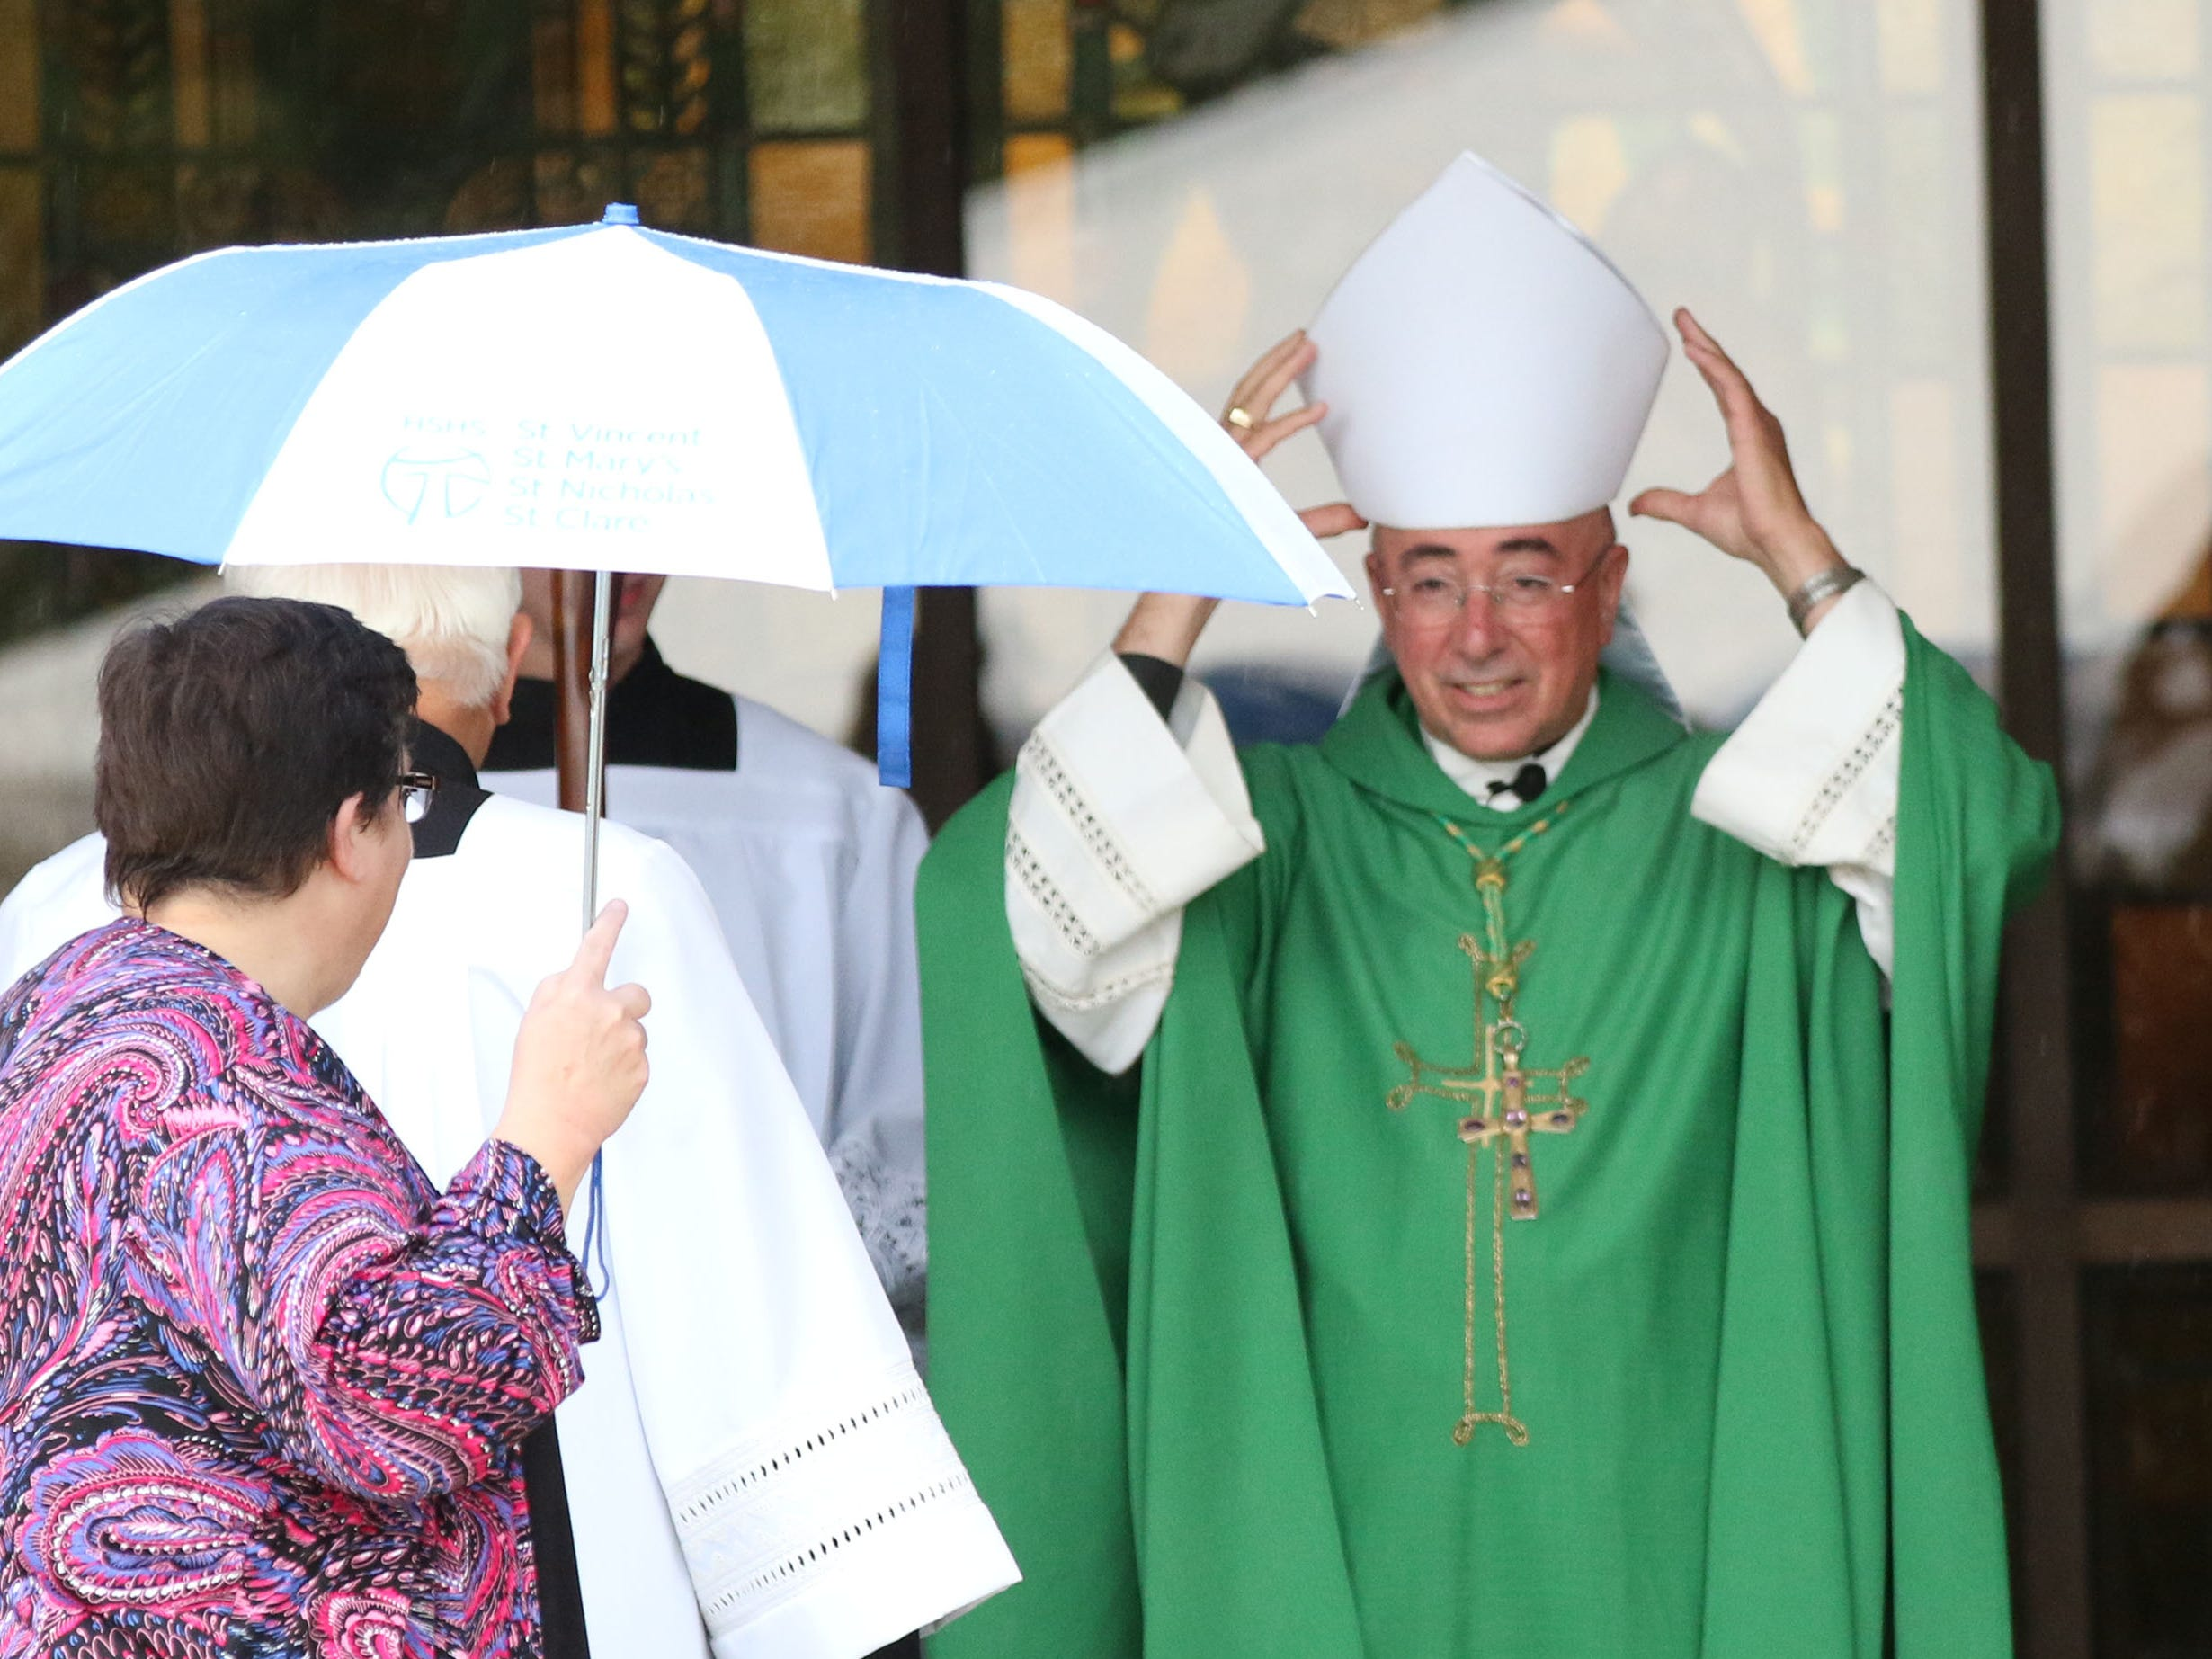 Most Reverend James Schuerman of the Milwaukee Diocese adjust his mitre before a Mass of Celebration for incoming HSHS St. Nicholas Hospital CEO Justin Selle, Wednesday, September 19, 2018, in Sheboygan, Wis.